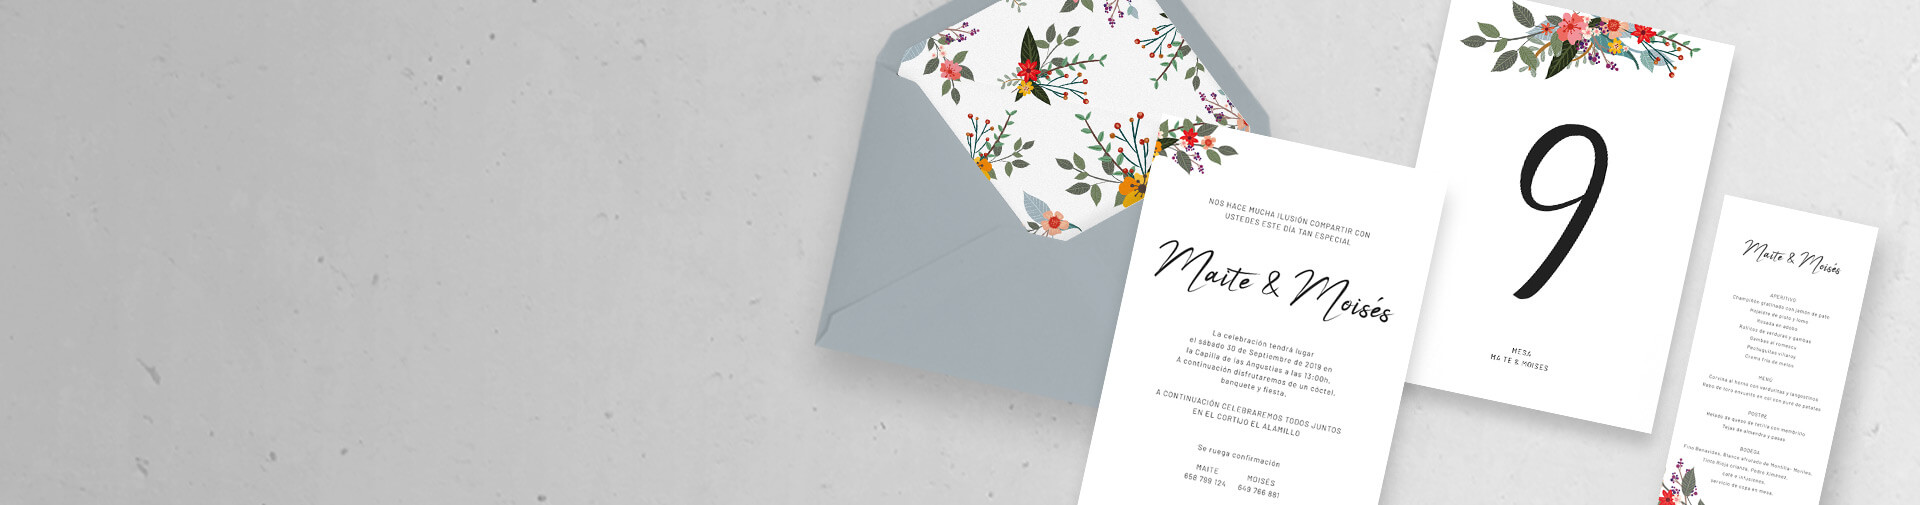 Paper Stories | Invitaciones de boda online